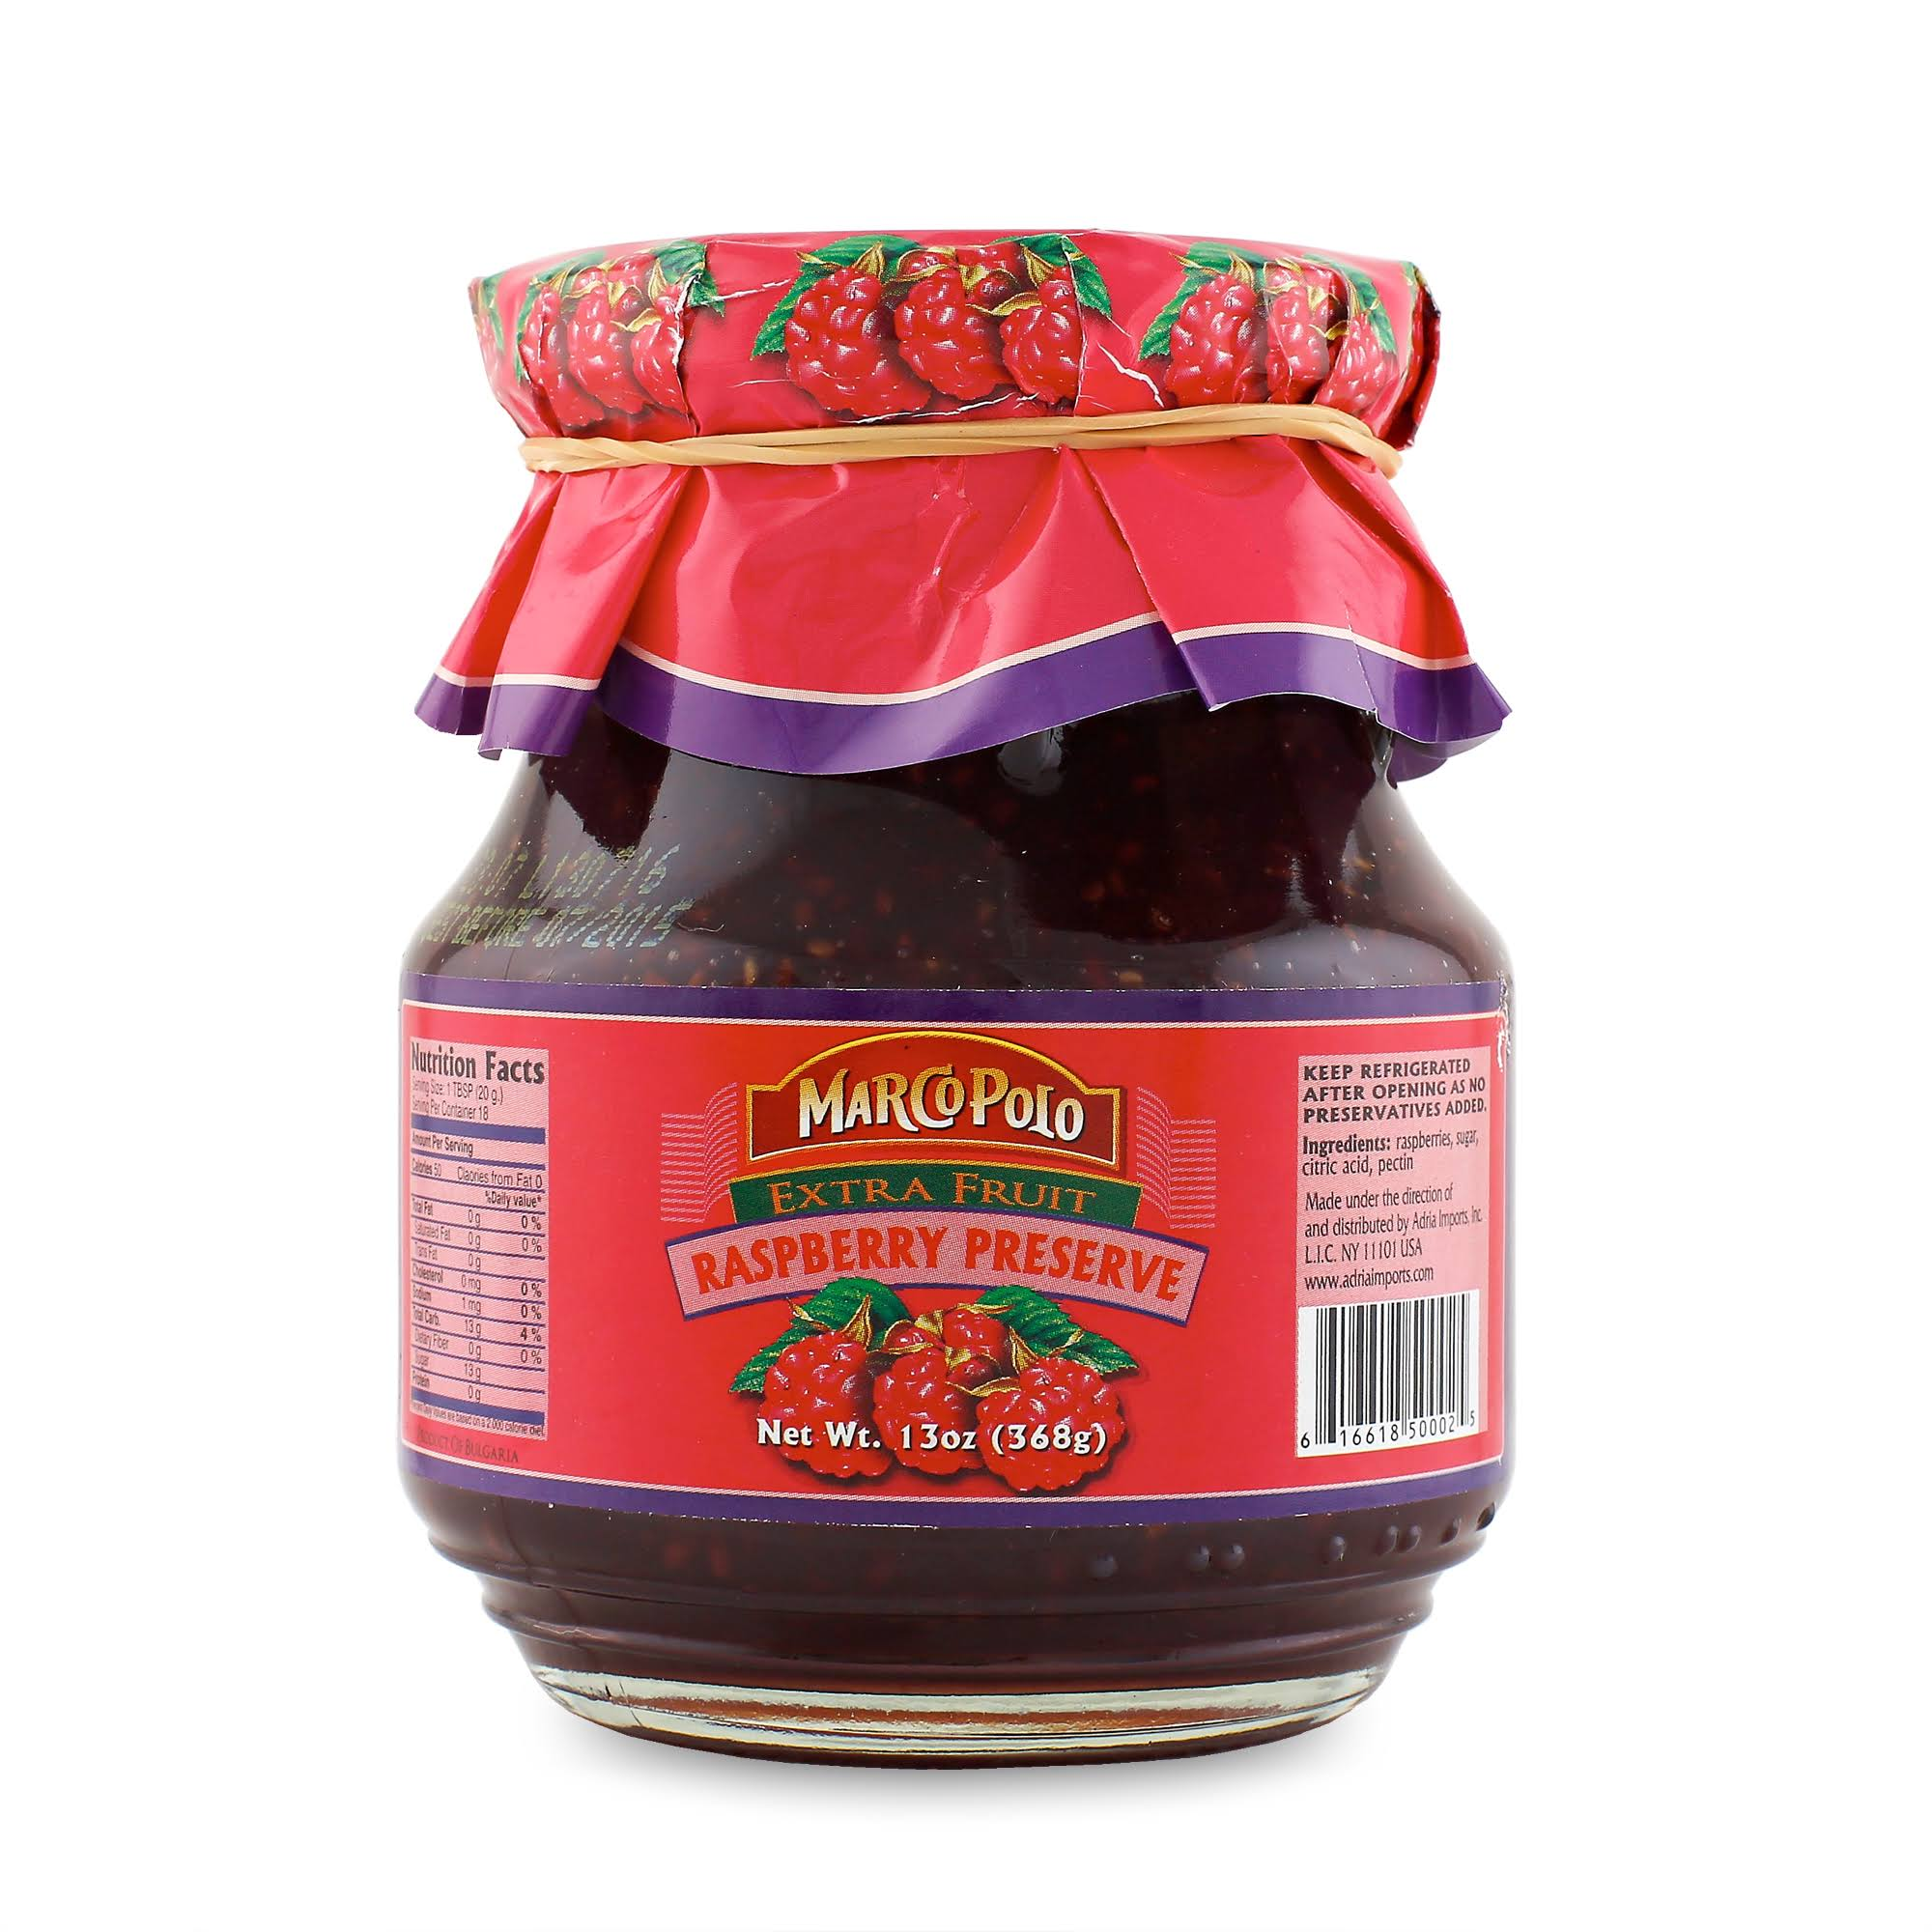 Marco Polo Extra Fruit Raspberry Preserve - 13oz